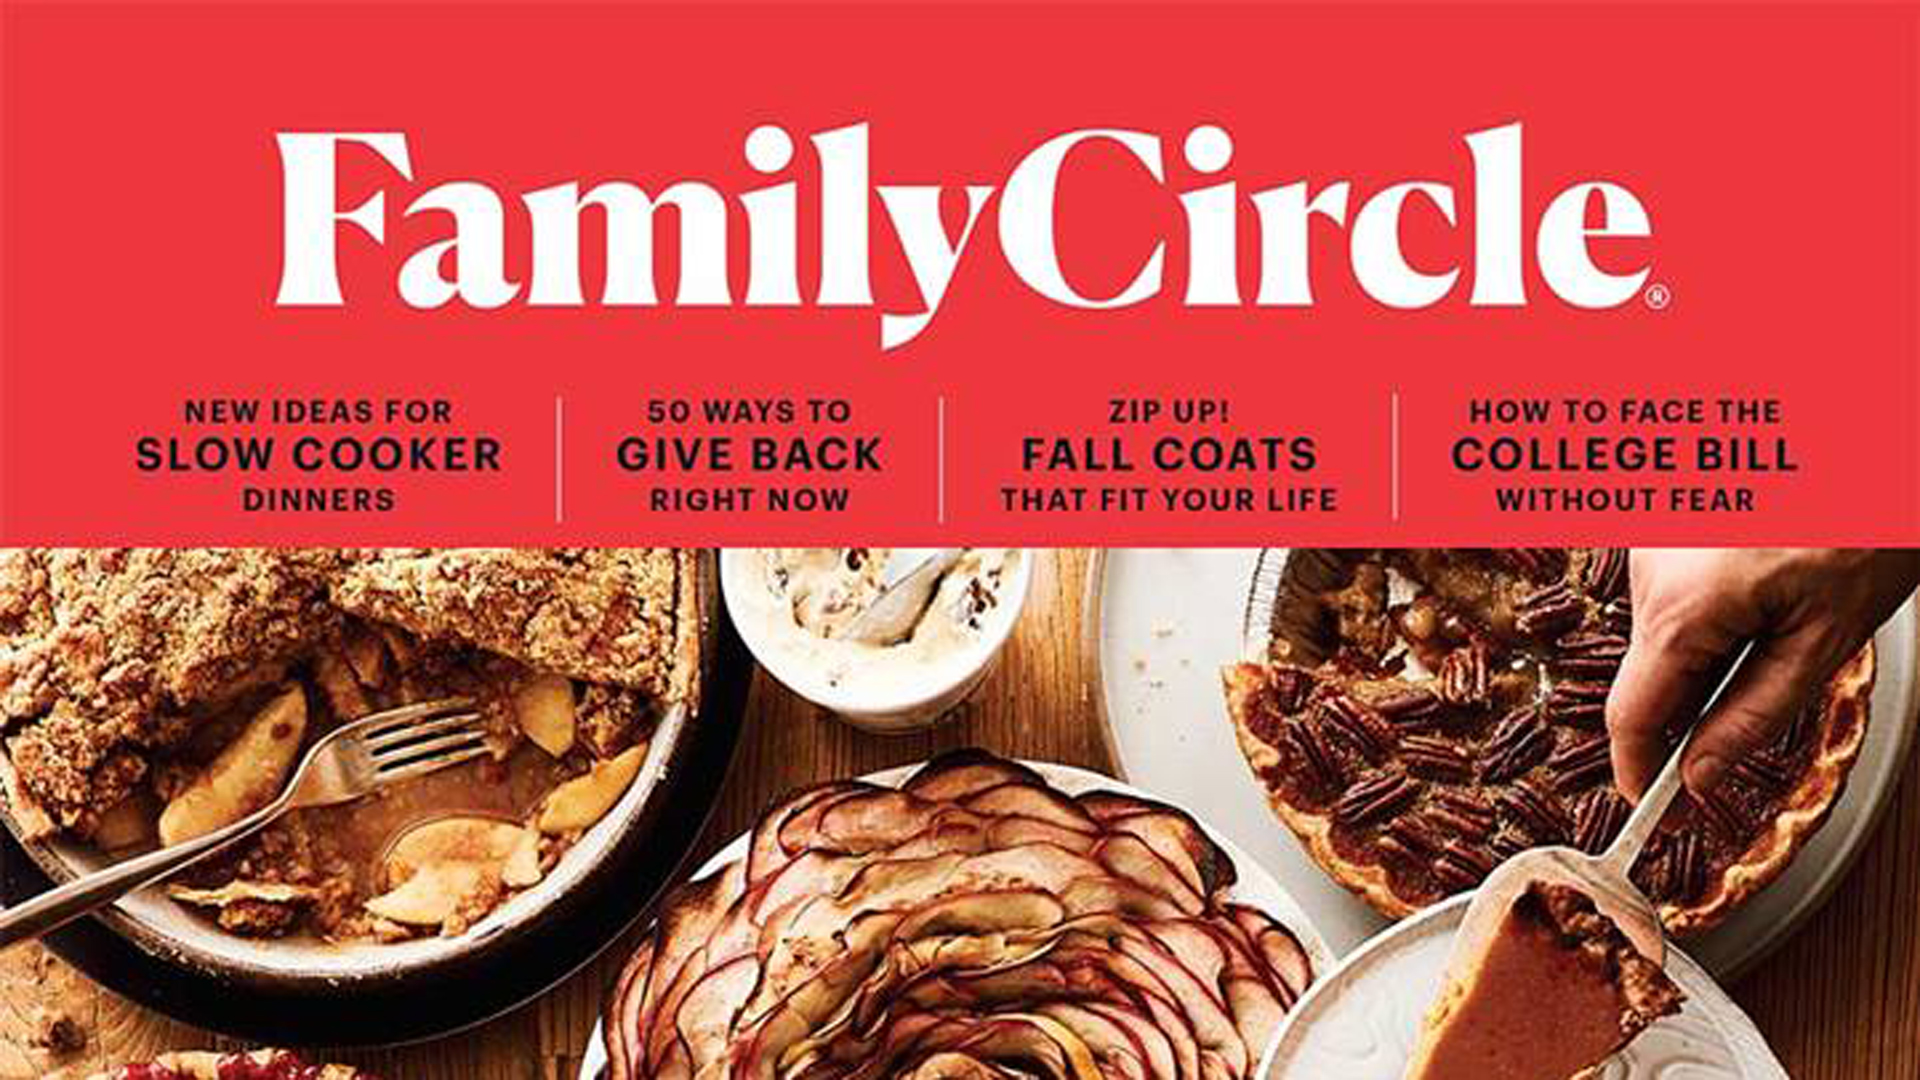 The cover of an issue of Family Circle appears in a photo posted on the magazine's Facebook page in October 2018.